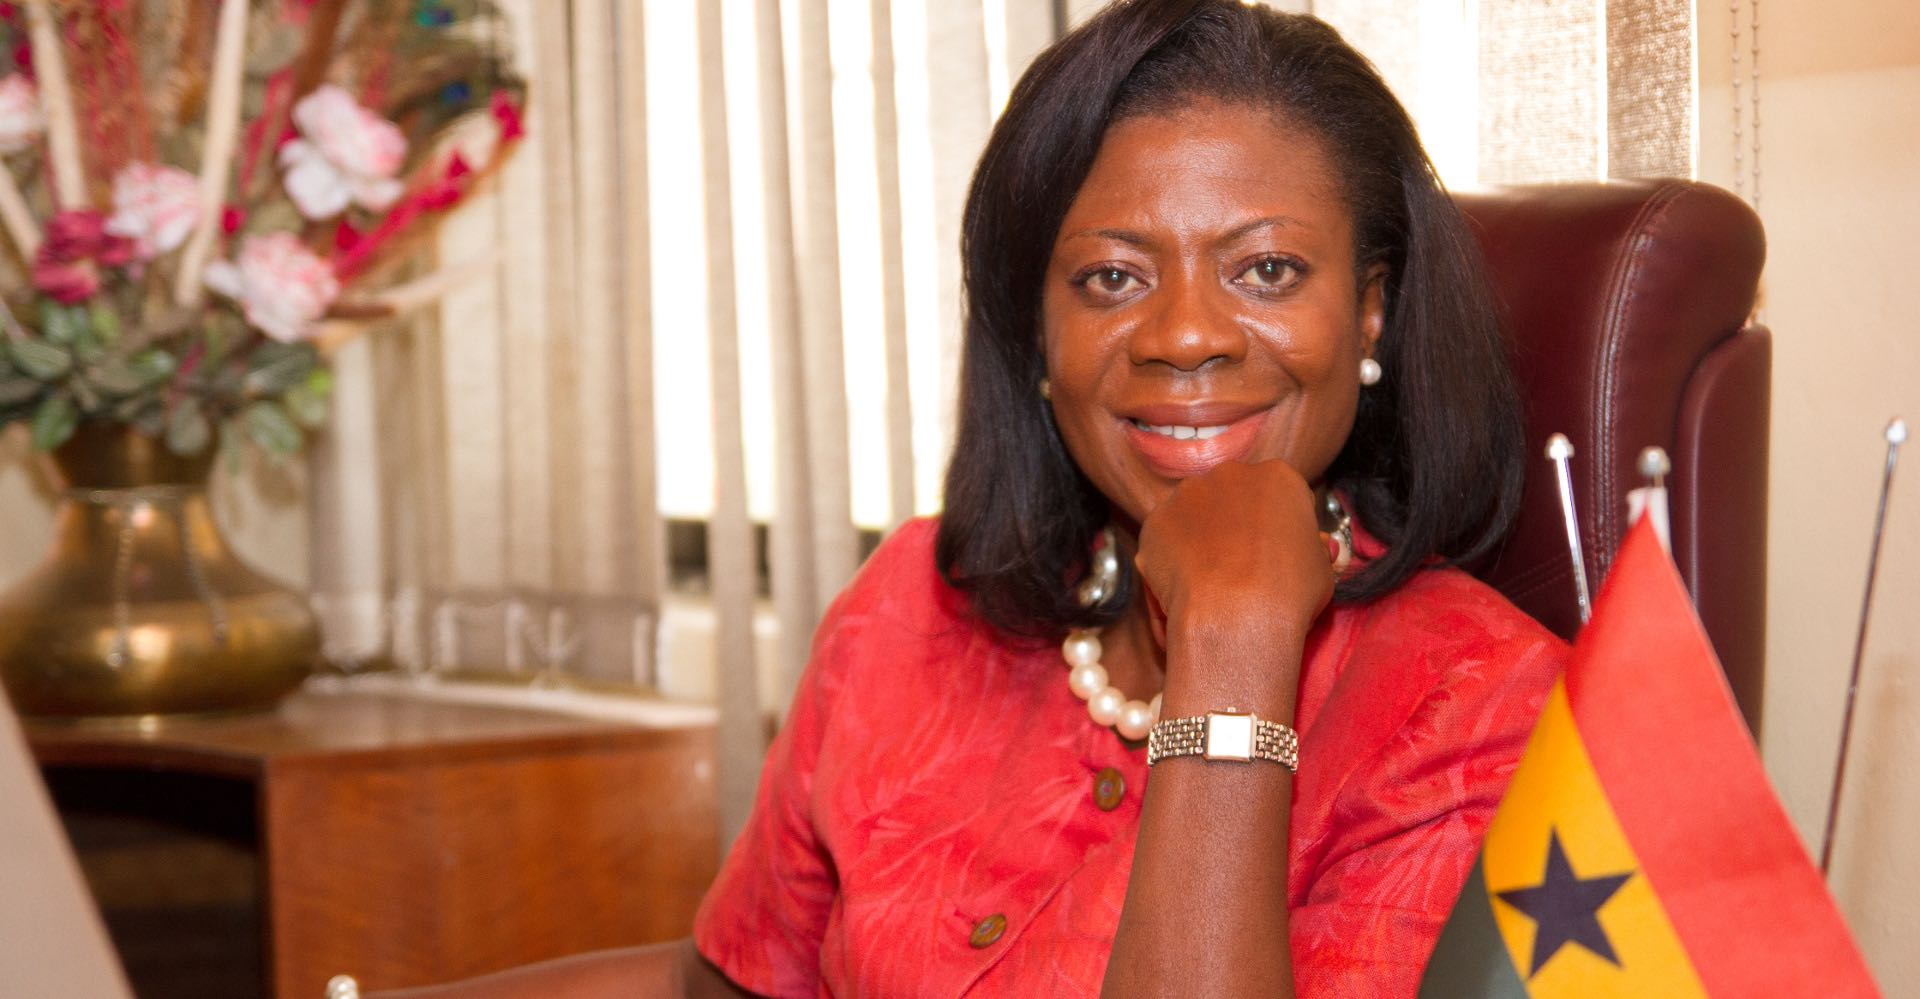 image asset - Richest Woman in Ghana 2020